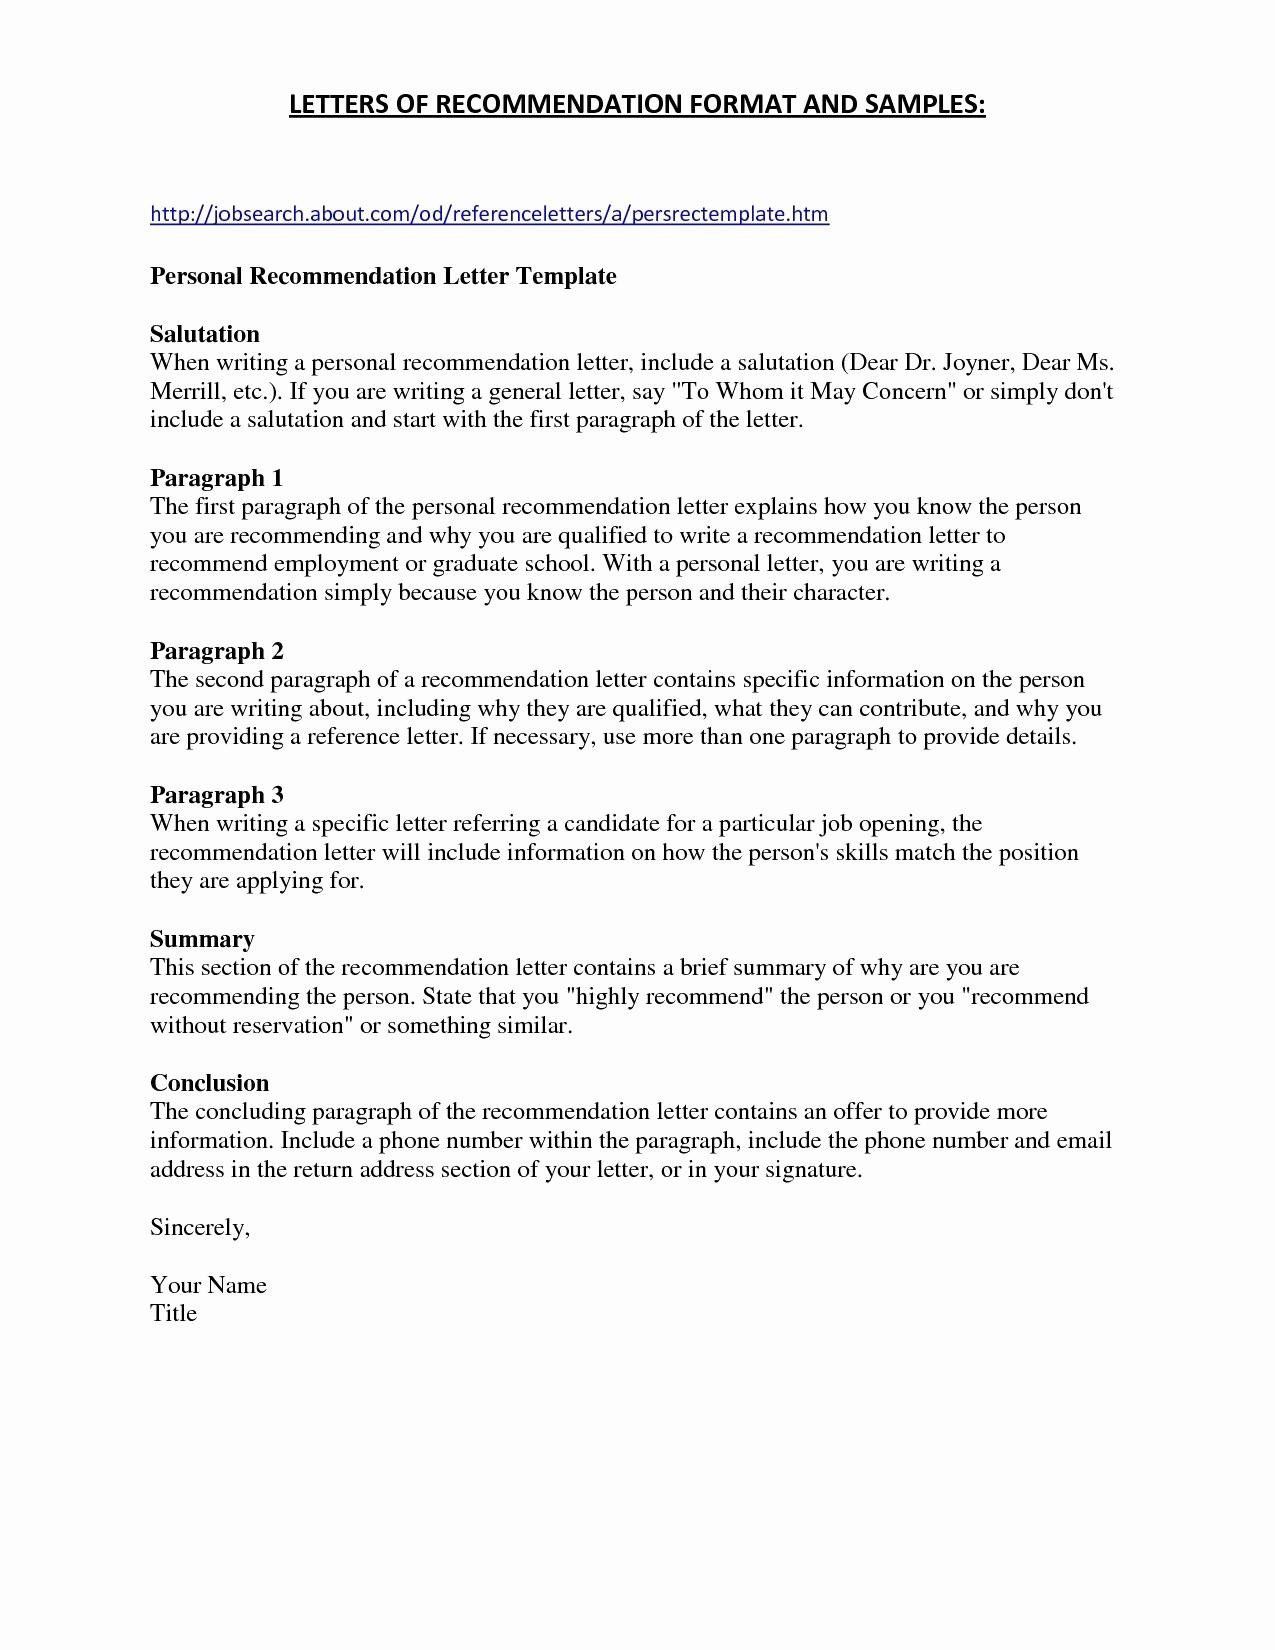 Resume Template for Office Administrator - Medical Fice Manager Resume Sample